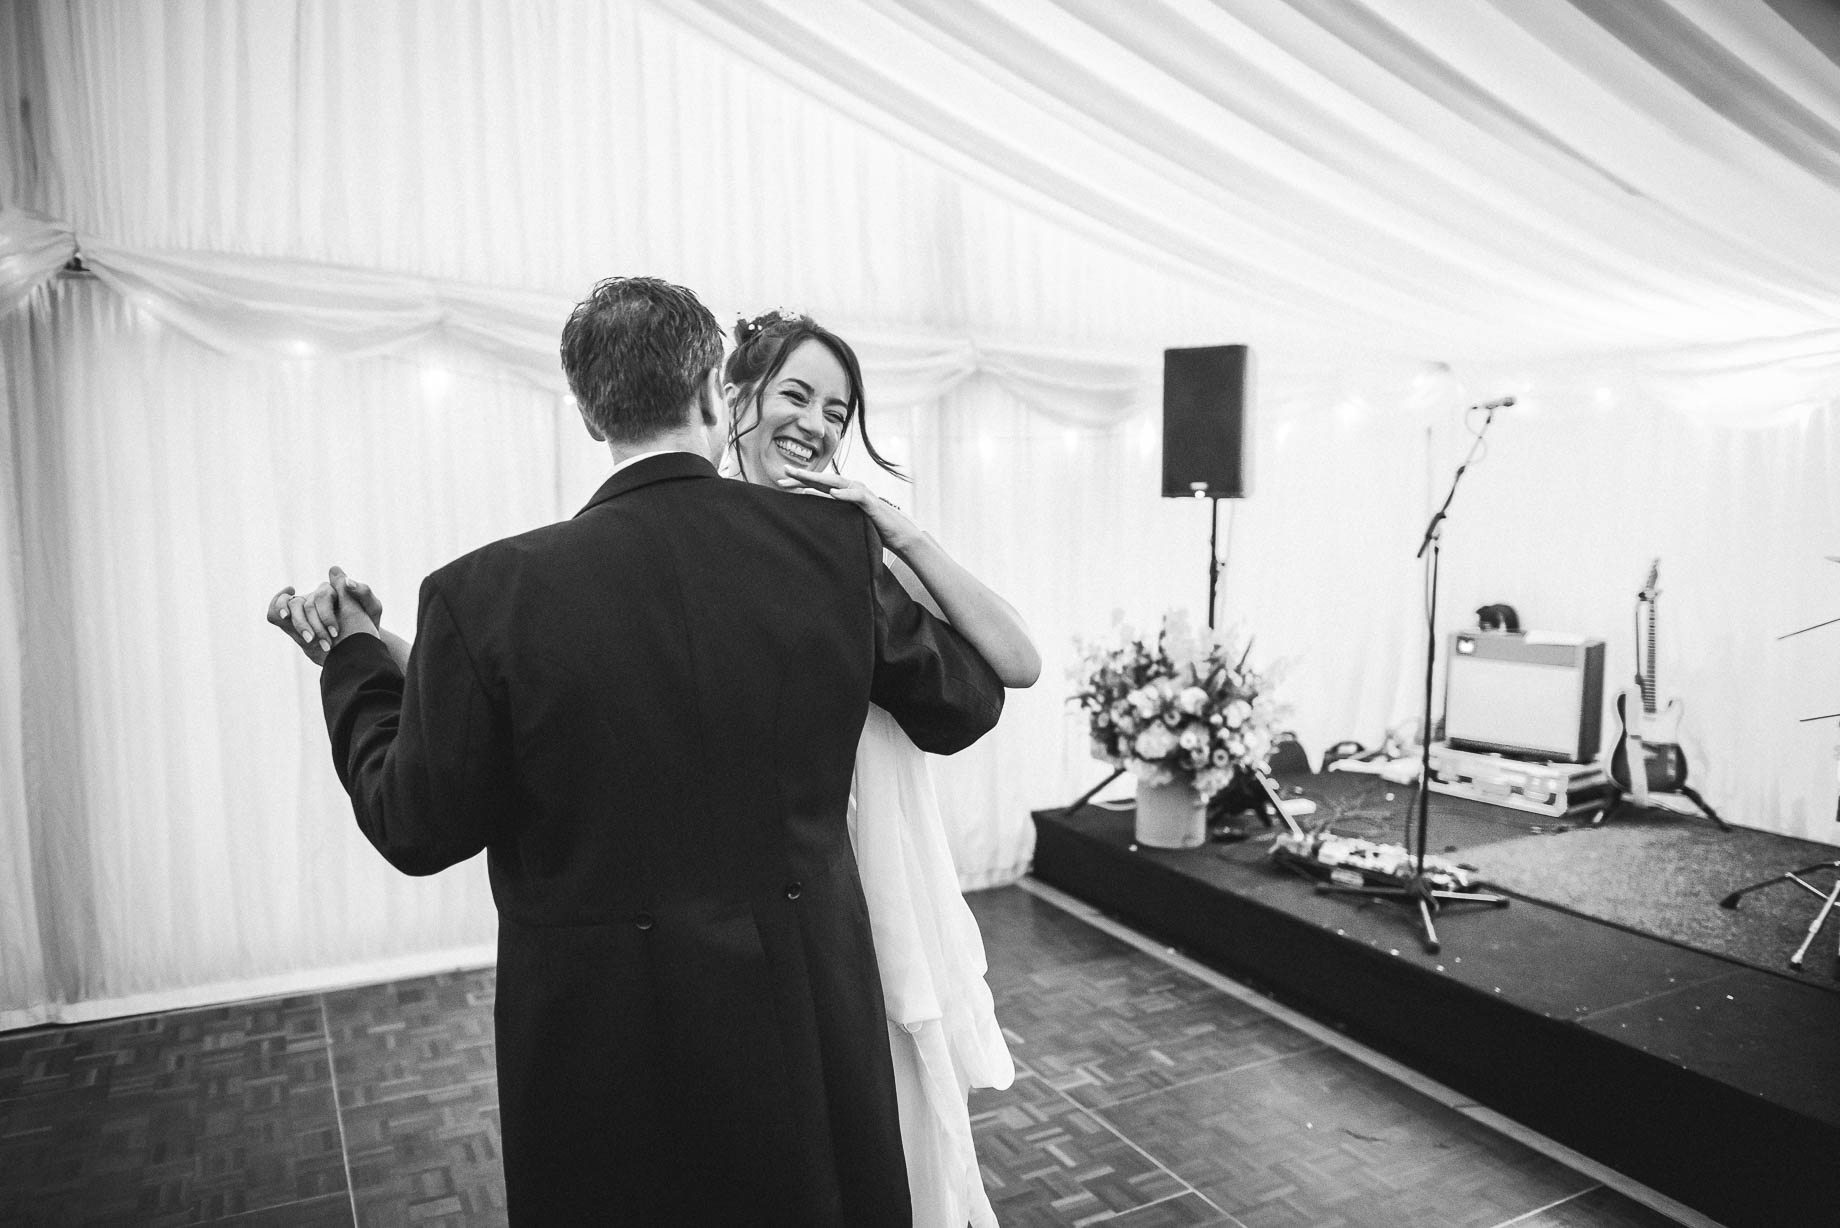 Windsor wedding photography - Guy Collier Photography - Libby and Alex (176 of 189)